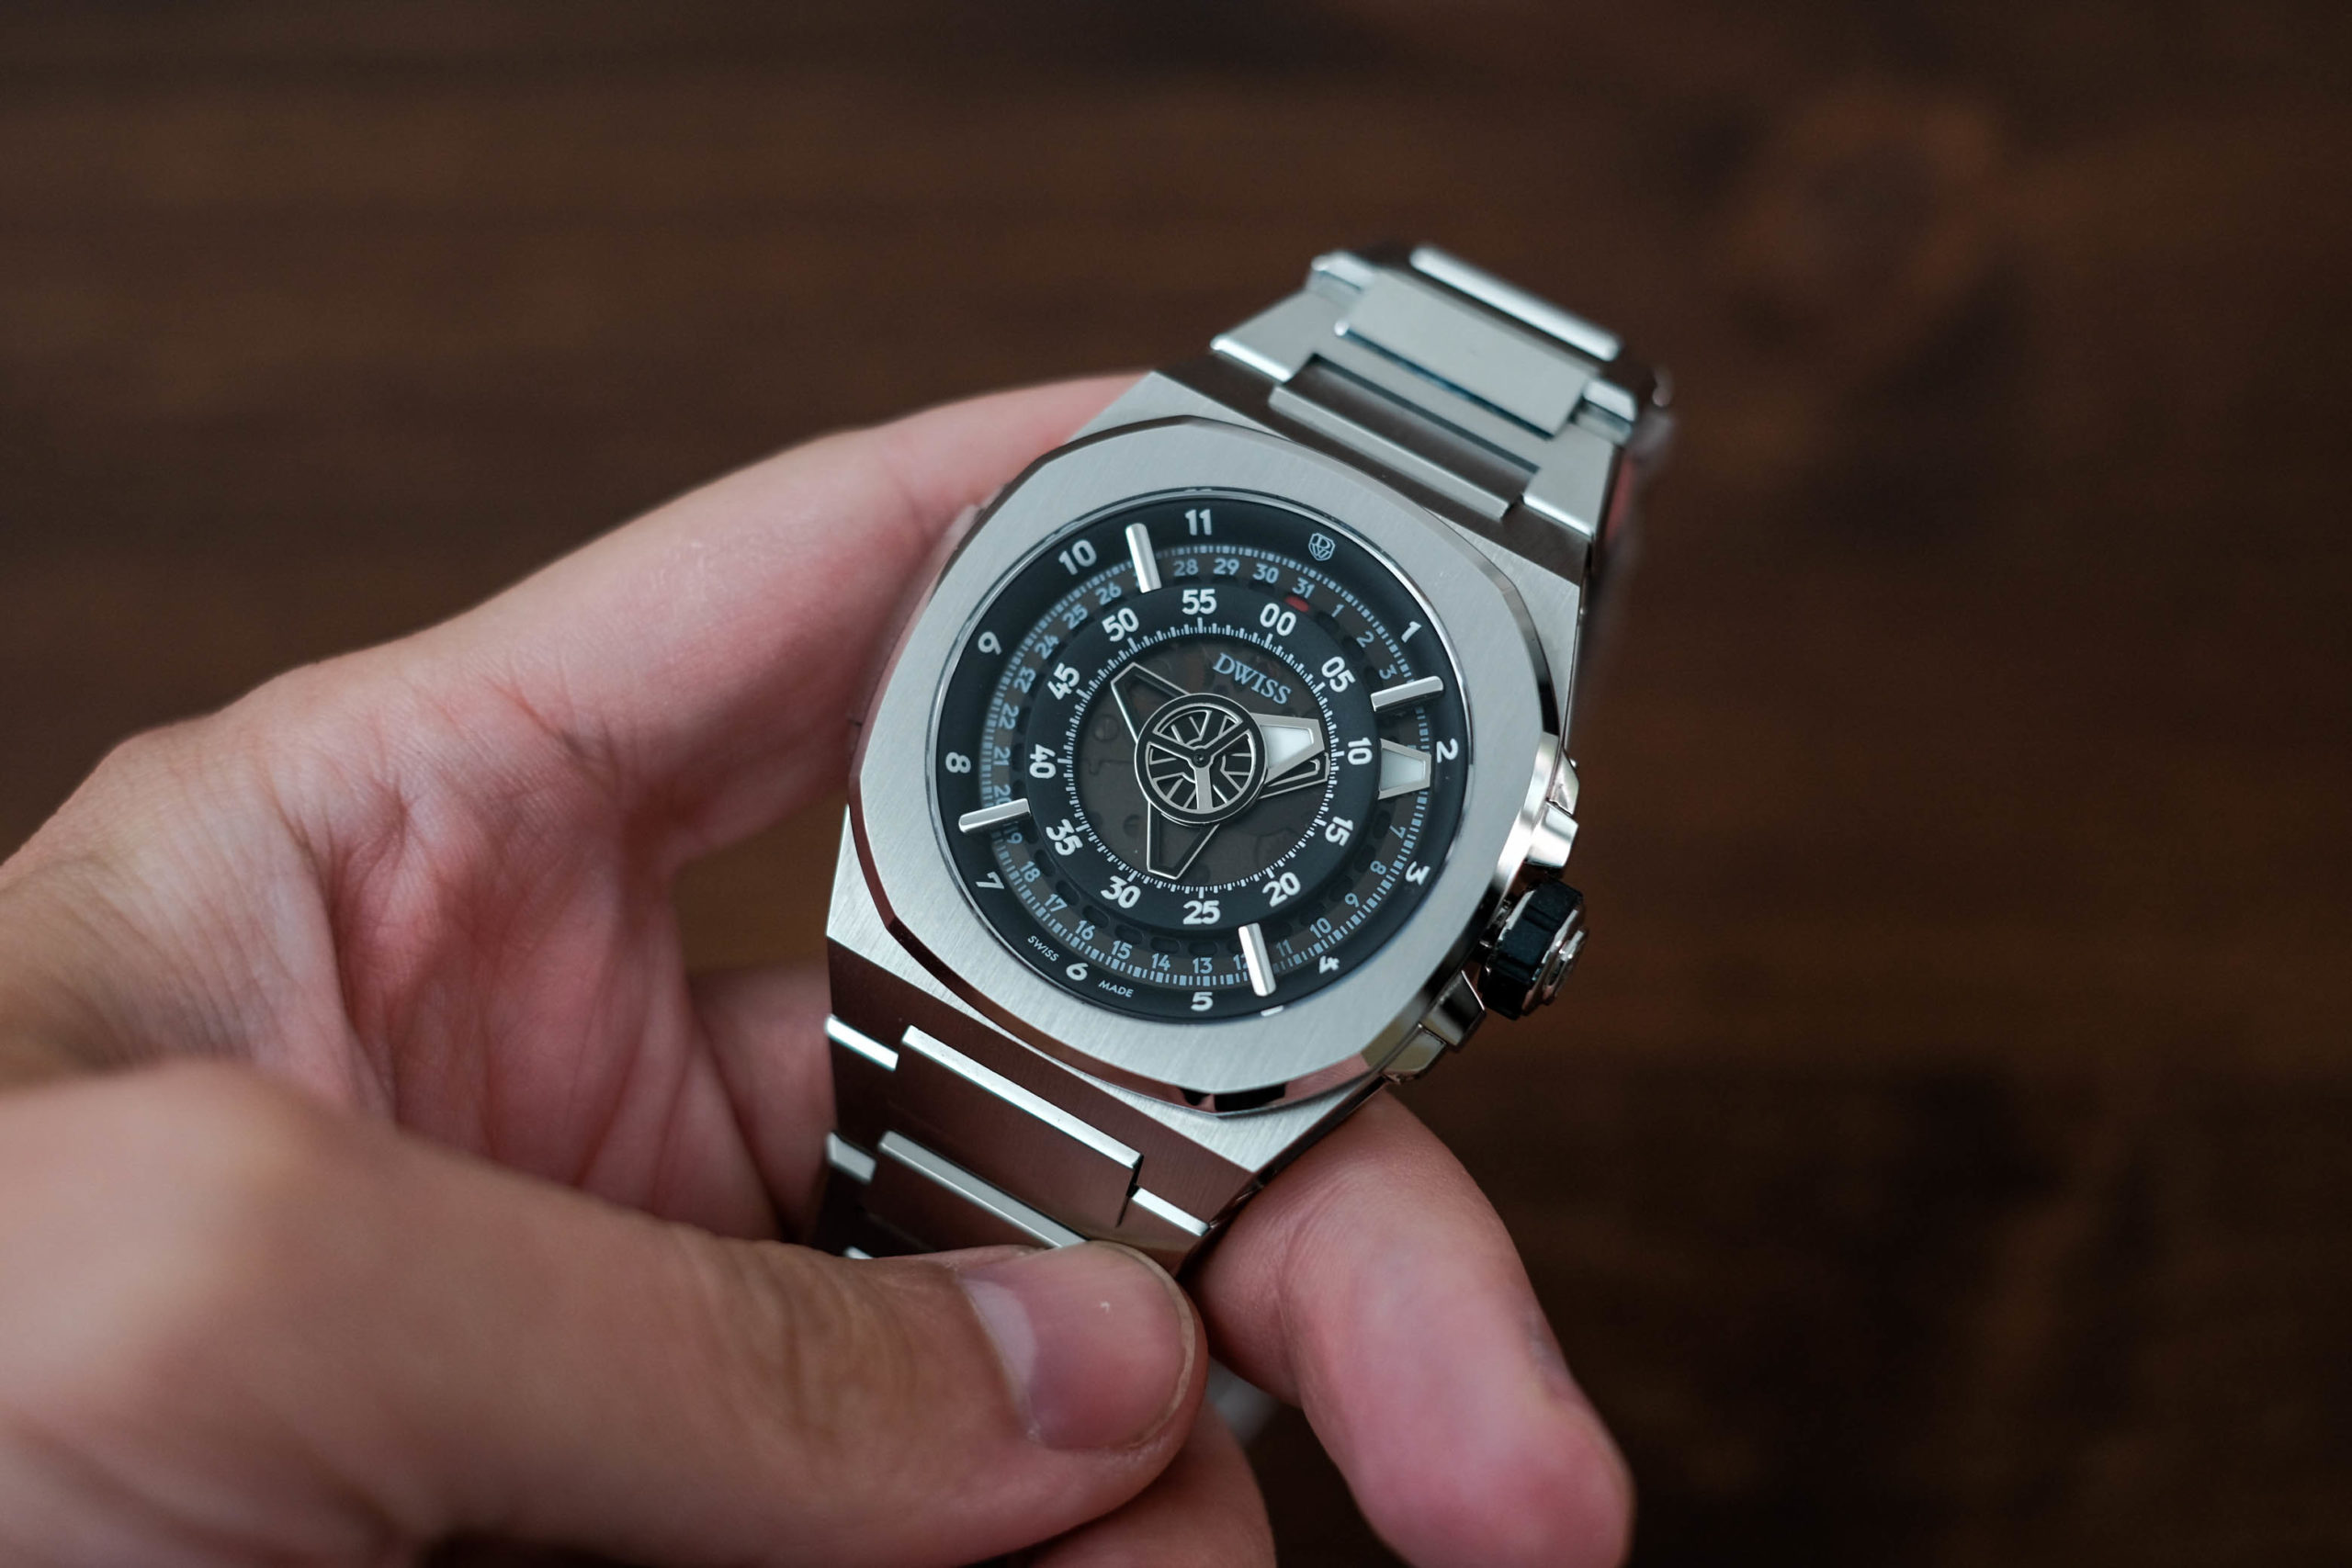 DWISS M3 Automatic Watch Review